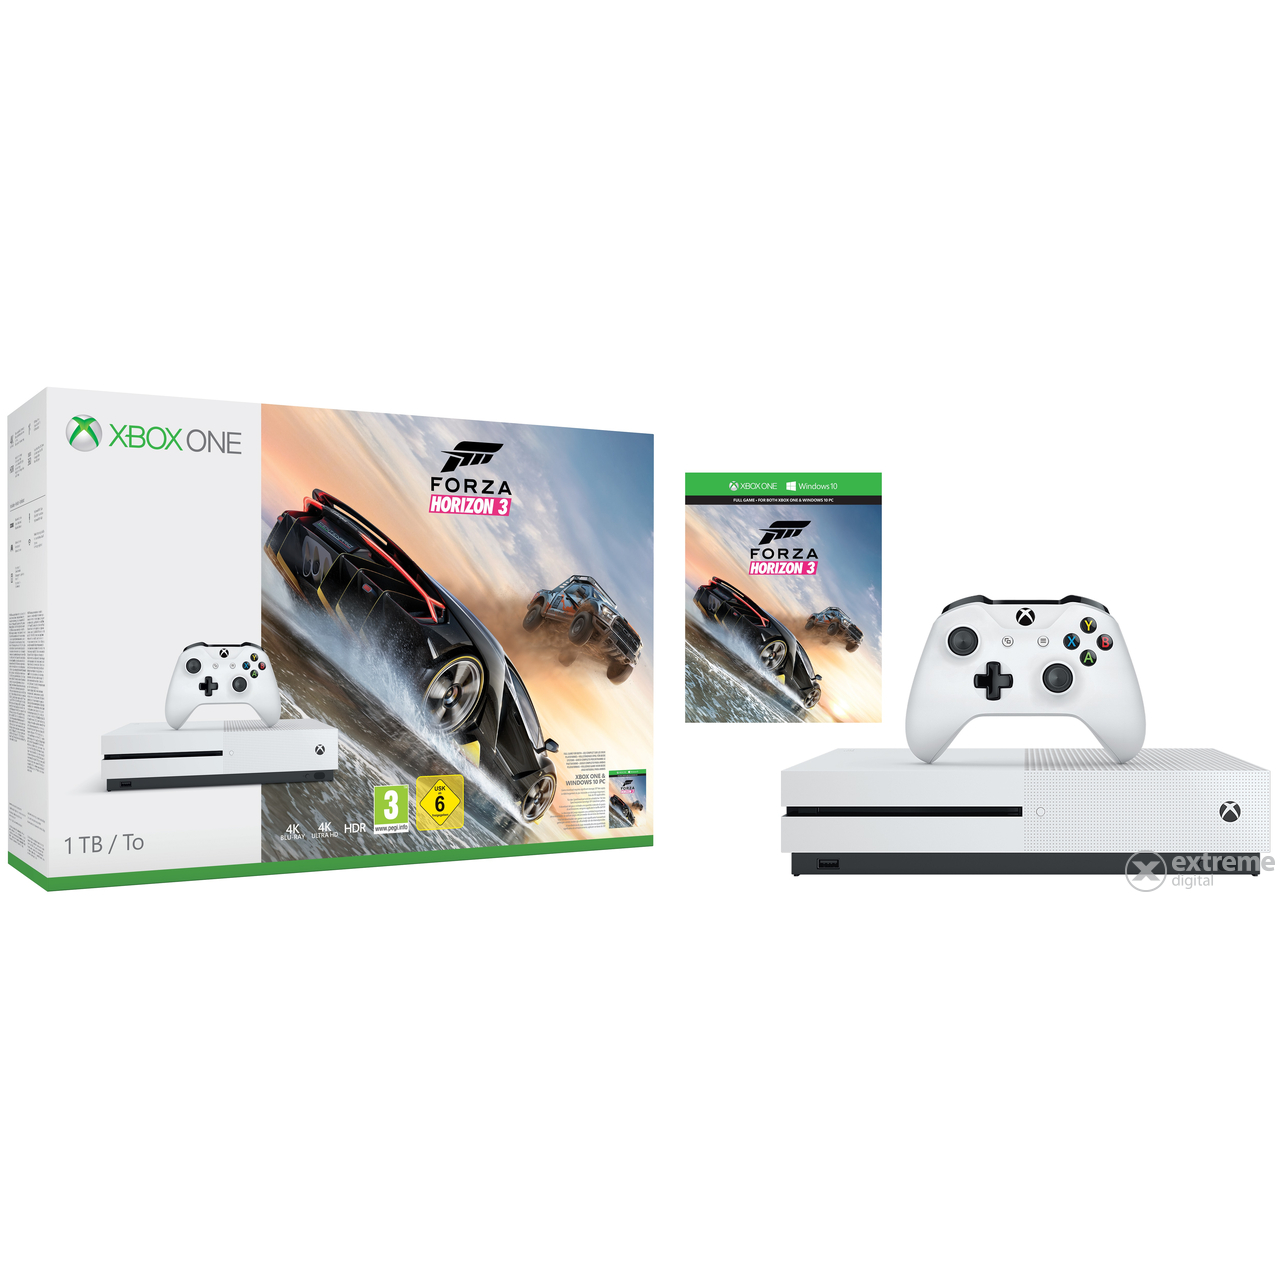 consola xbox one s 1tb forza horizon 3 extreme digital. Black Bedroom Furniture Sets. Home Design Ideas